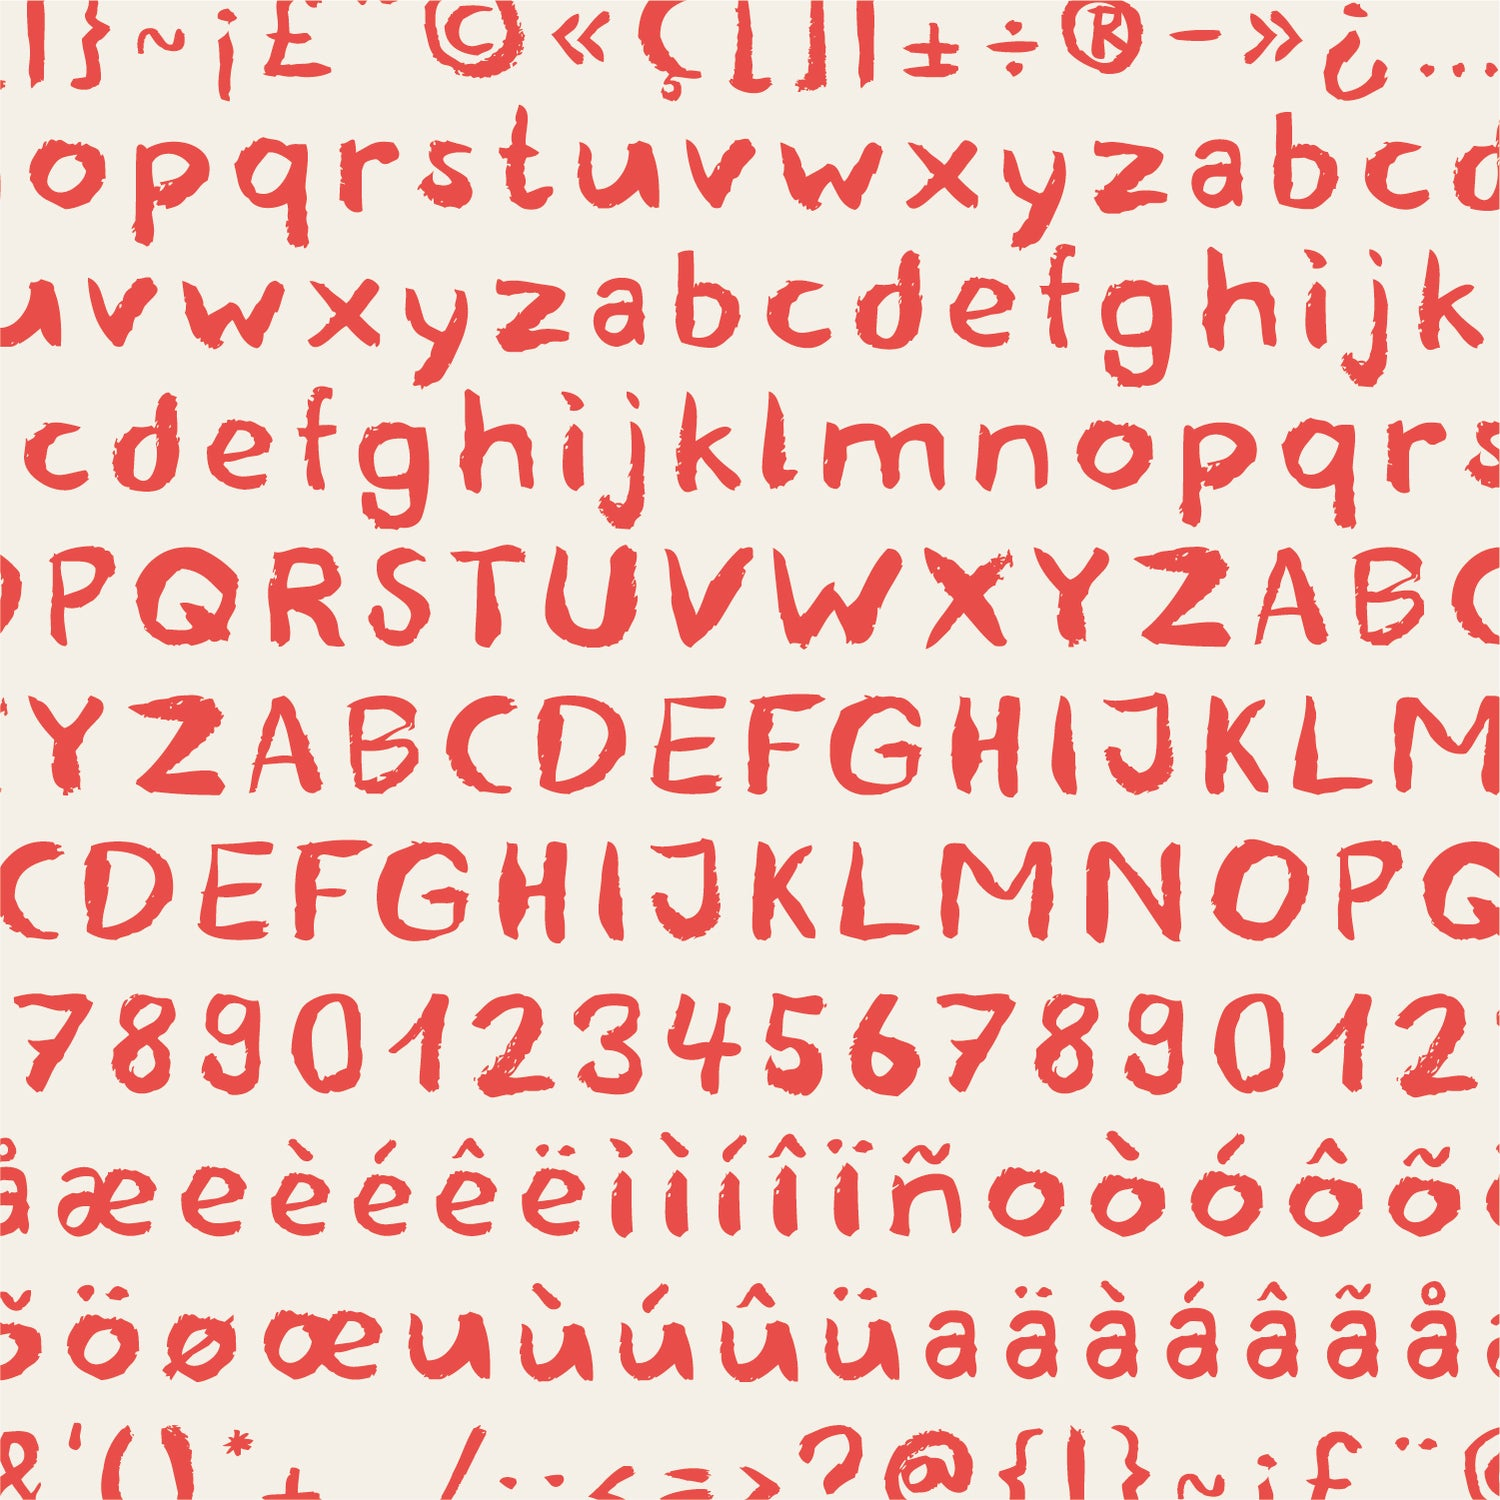 Image of Blemished Typeface – Licence for commercial use